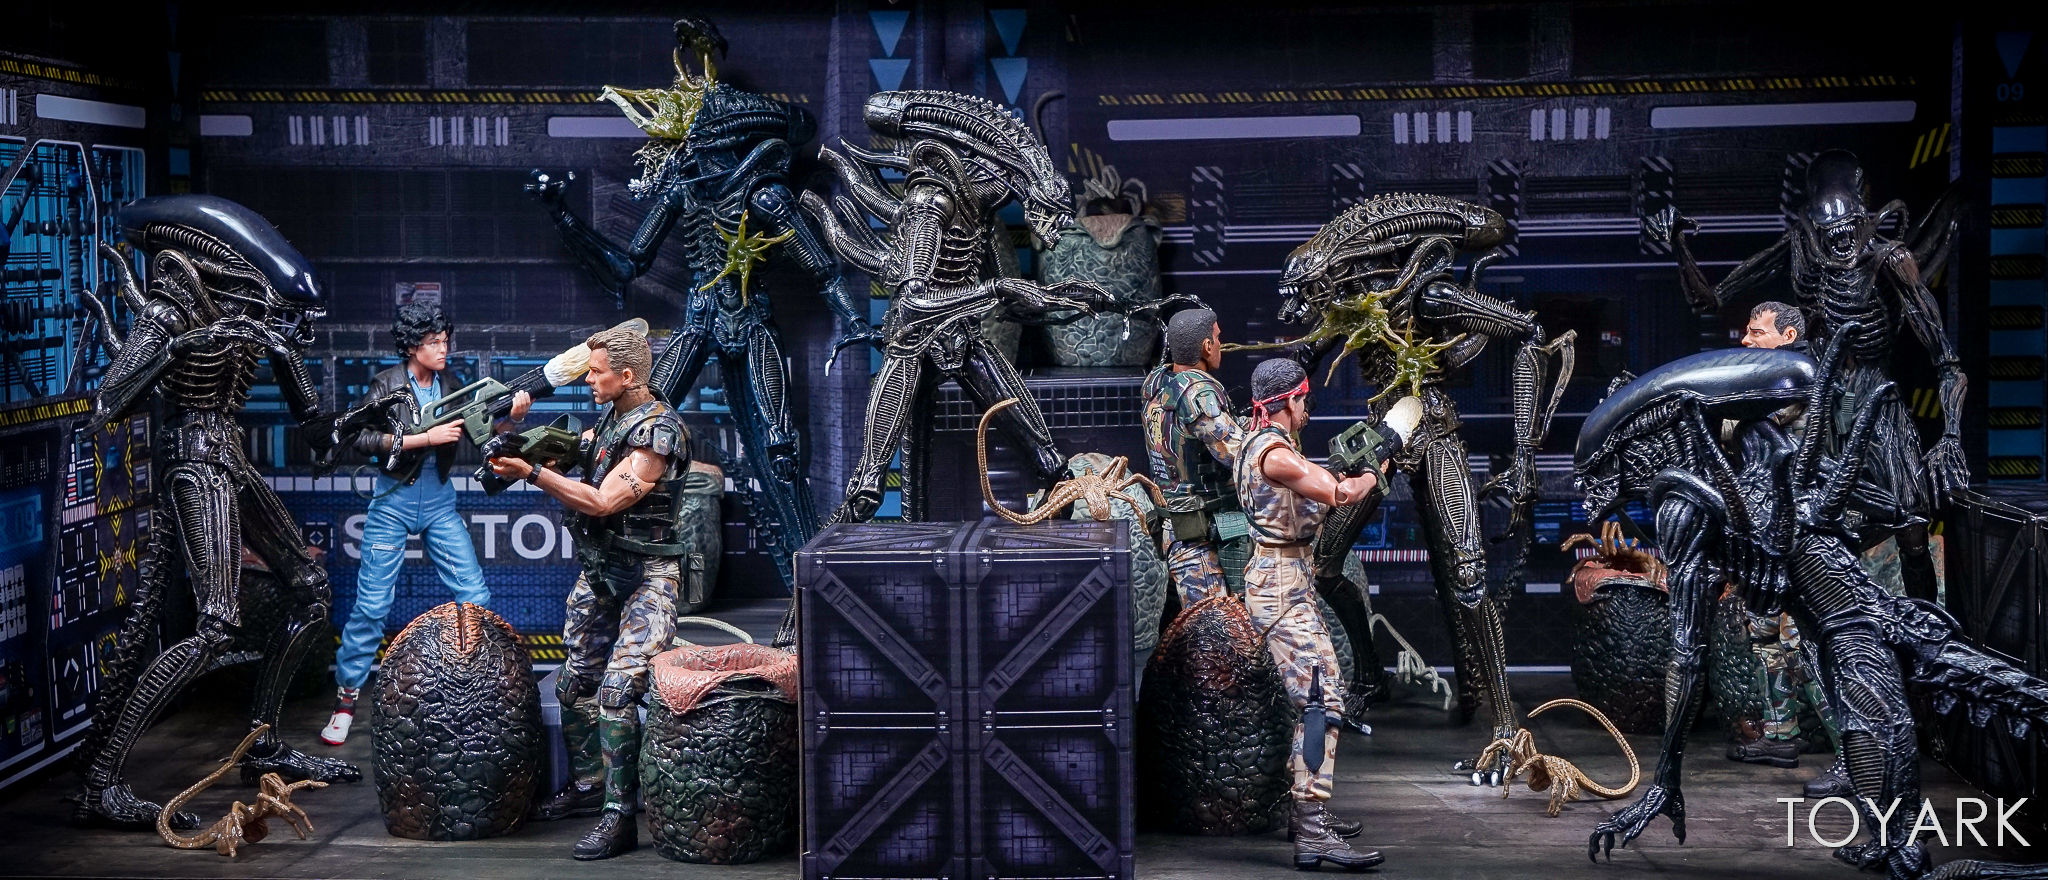 http://news.toyark.com/wp-content/uploads/sites/4/2017/10/NECA-Aliens-Series-12-Figures-047.jpg